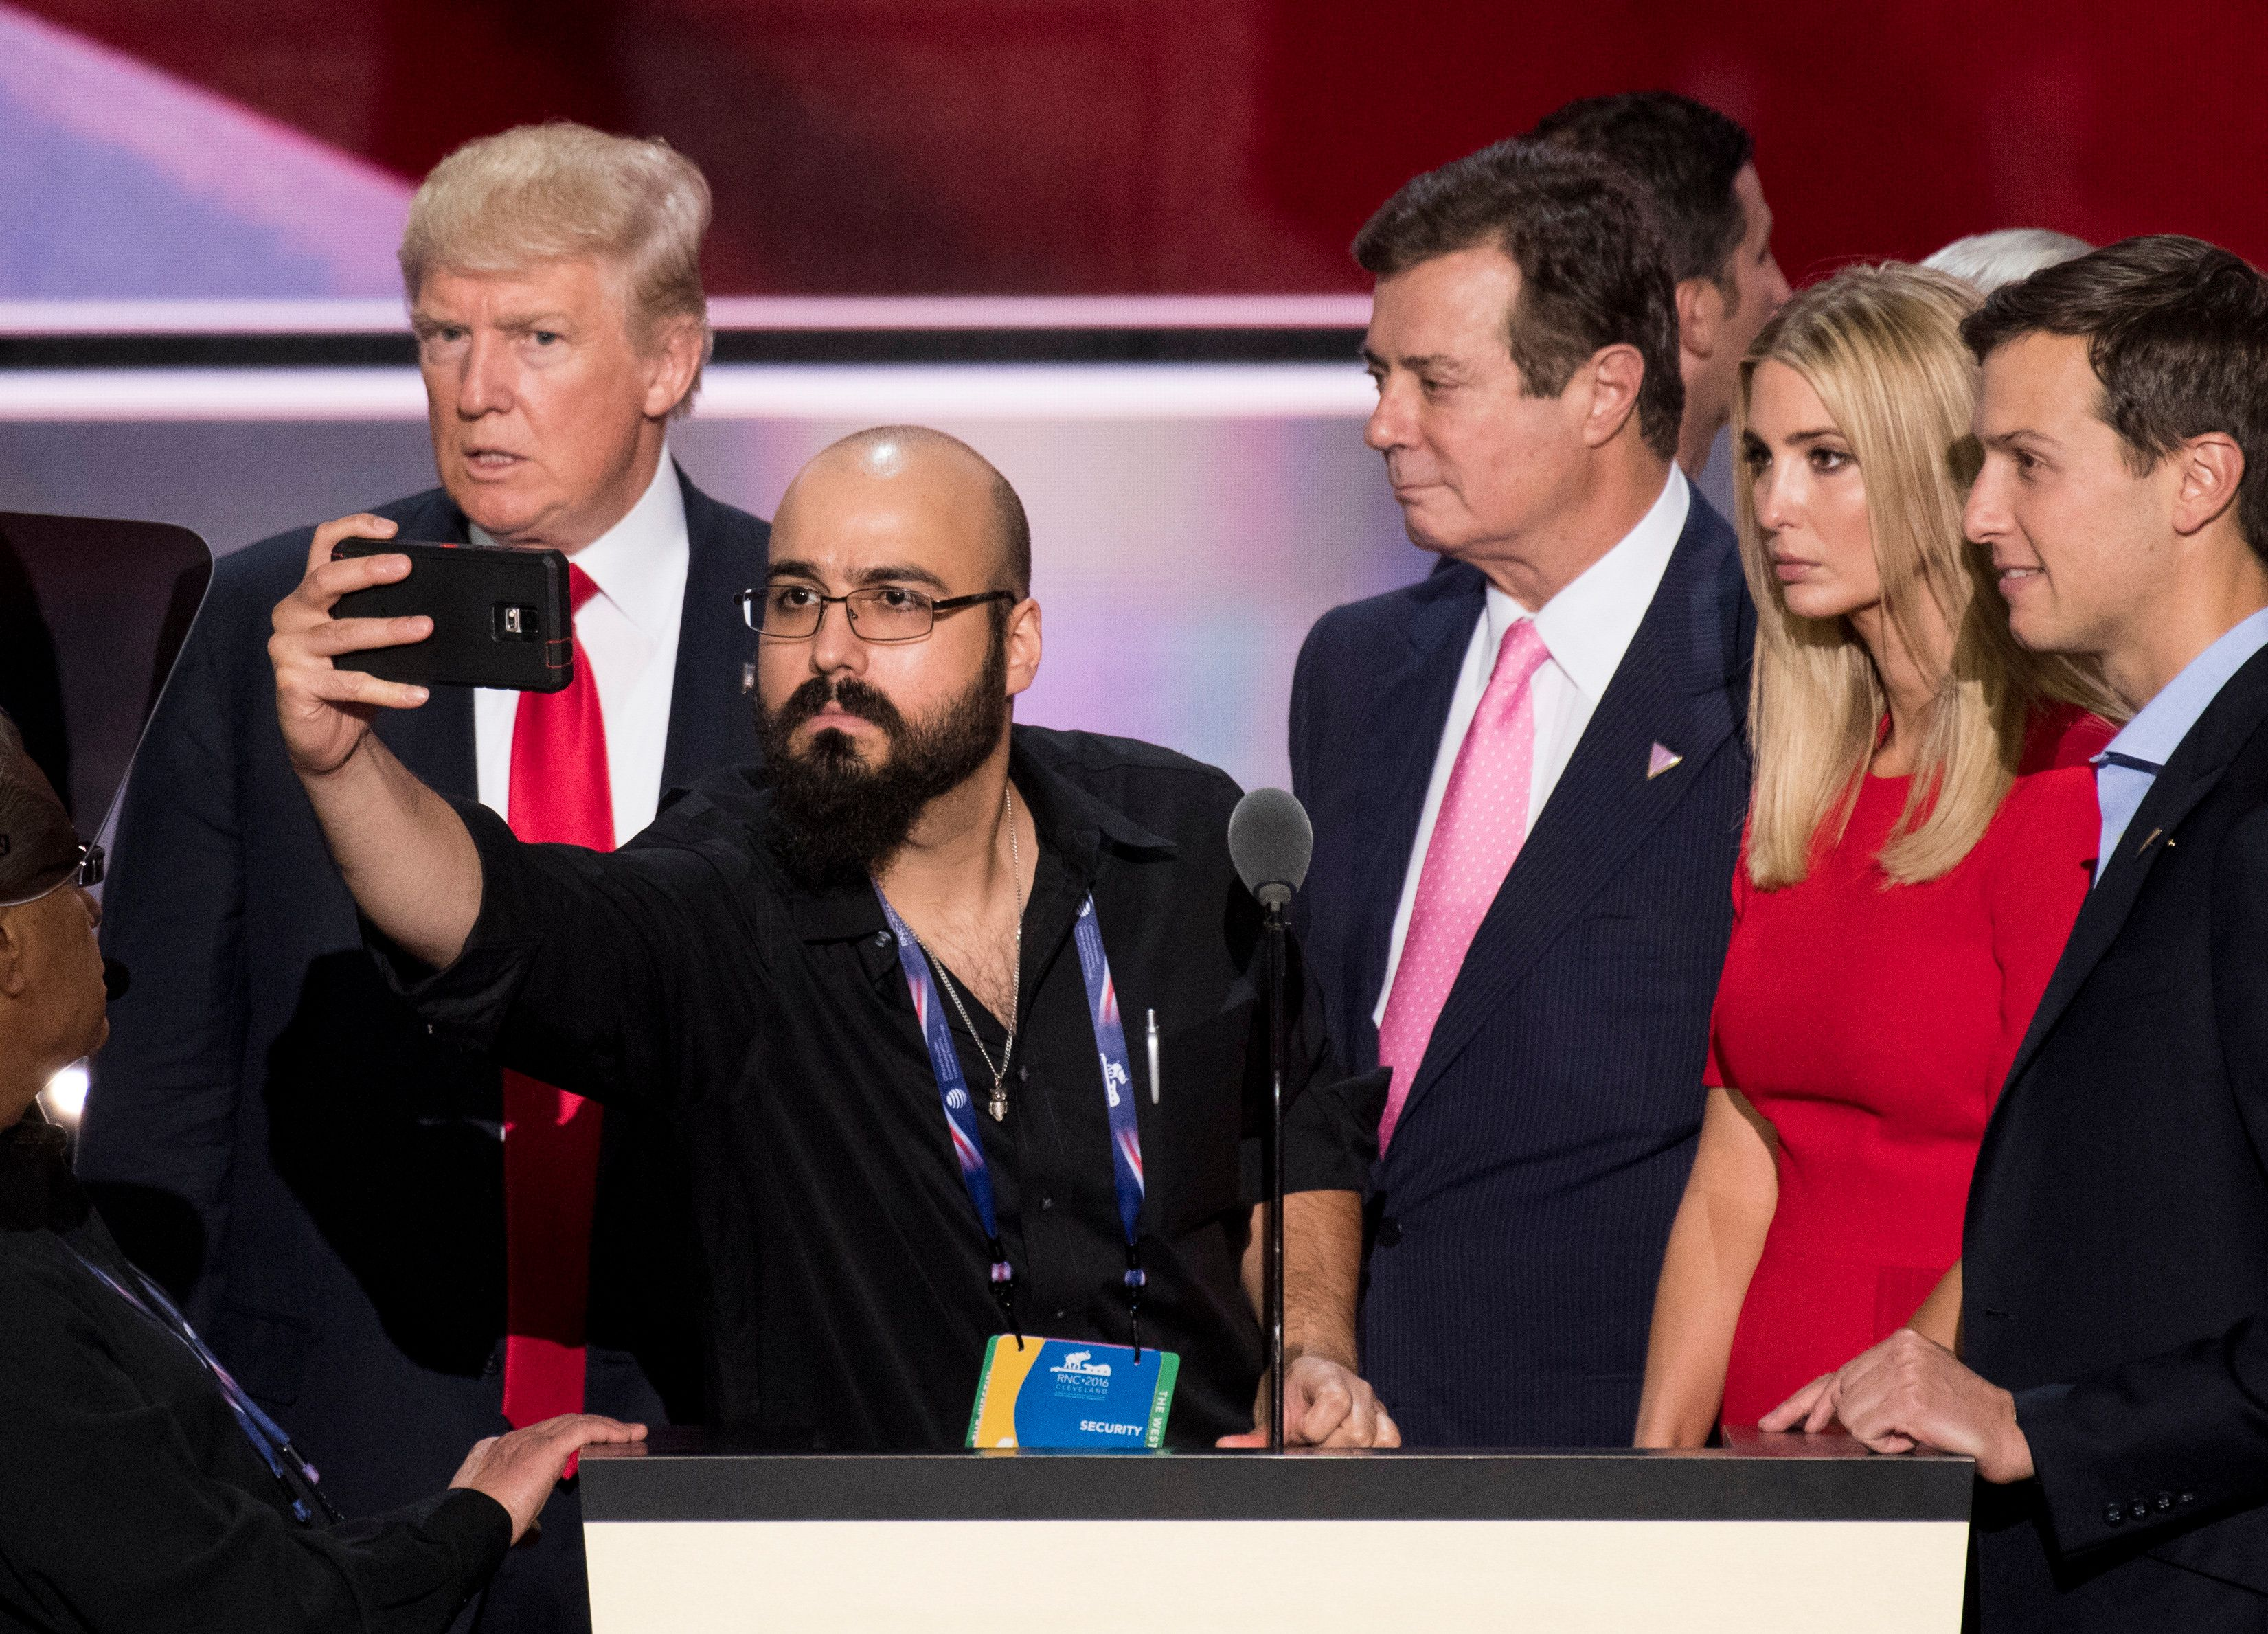 Donald Trump, flanked by campaign manager Paul Manafort (3rd from right) and daughter Ivanka inJuly